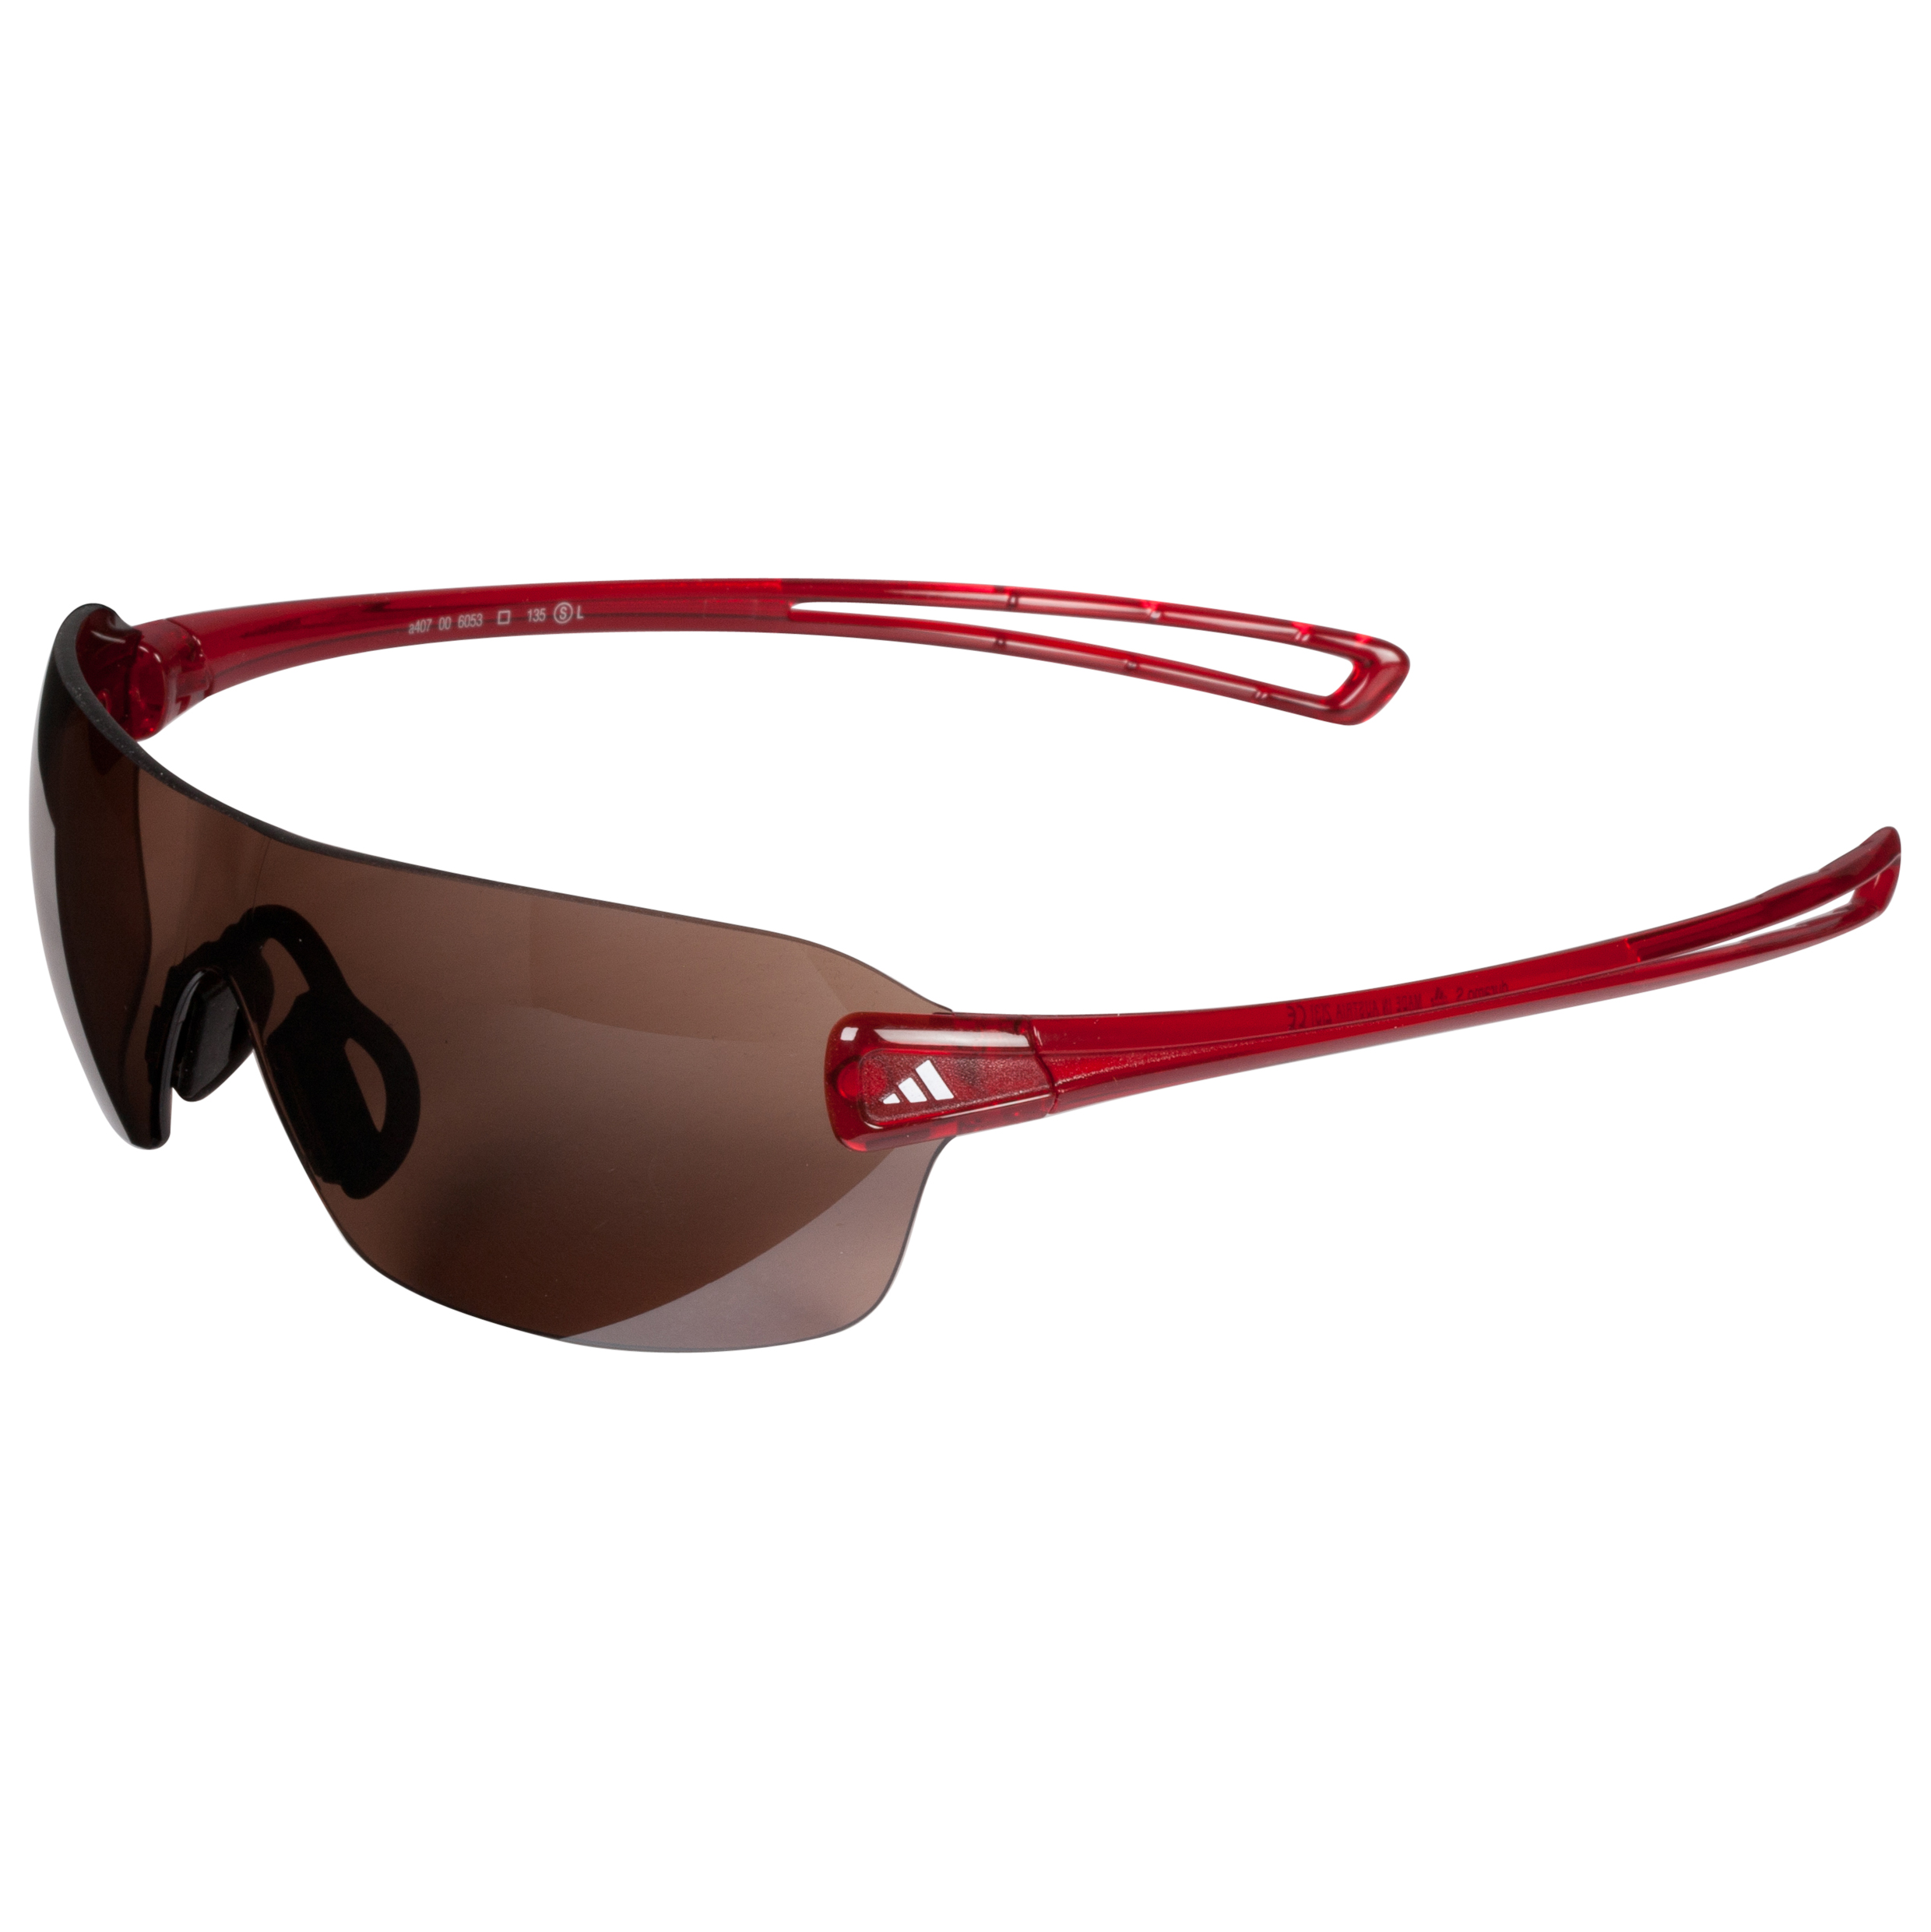 Adidas Duramo Sunglasses - Red